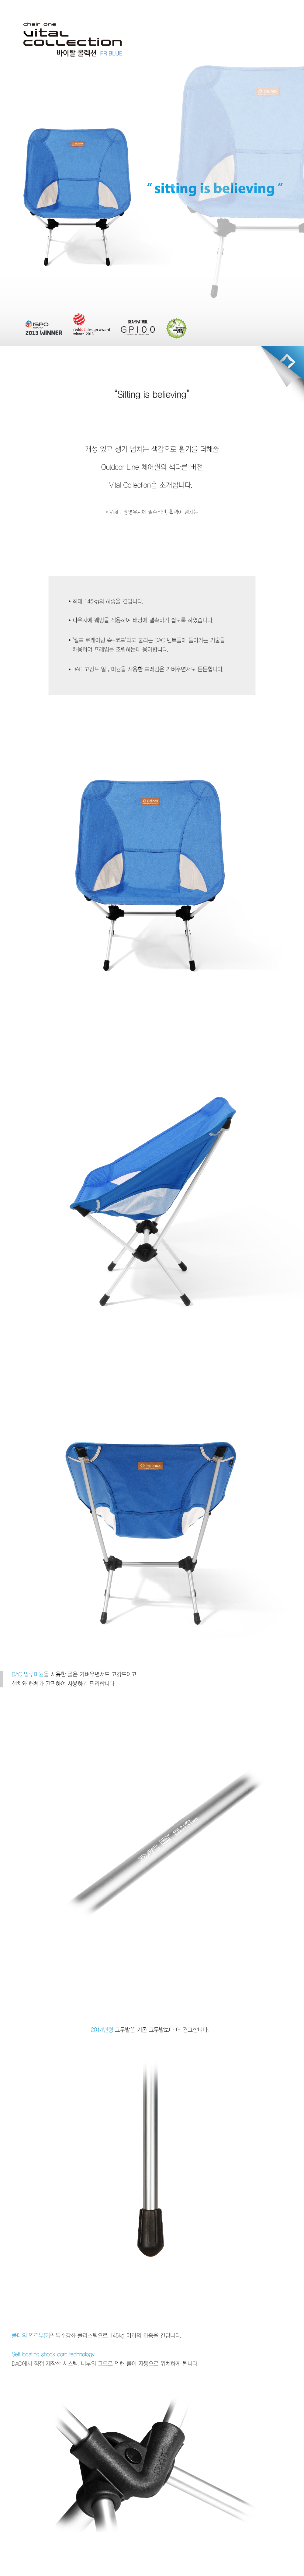 20170918-Helinox_chair-one_vital-collection-blue11.jpg